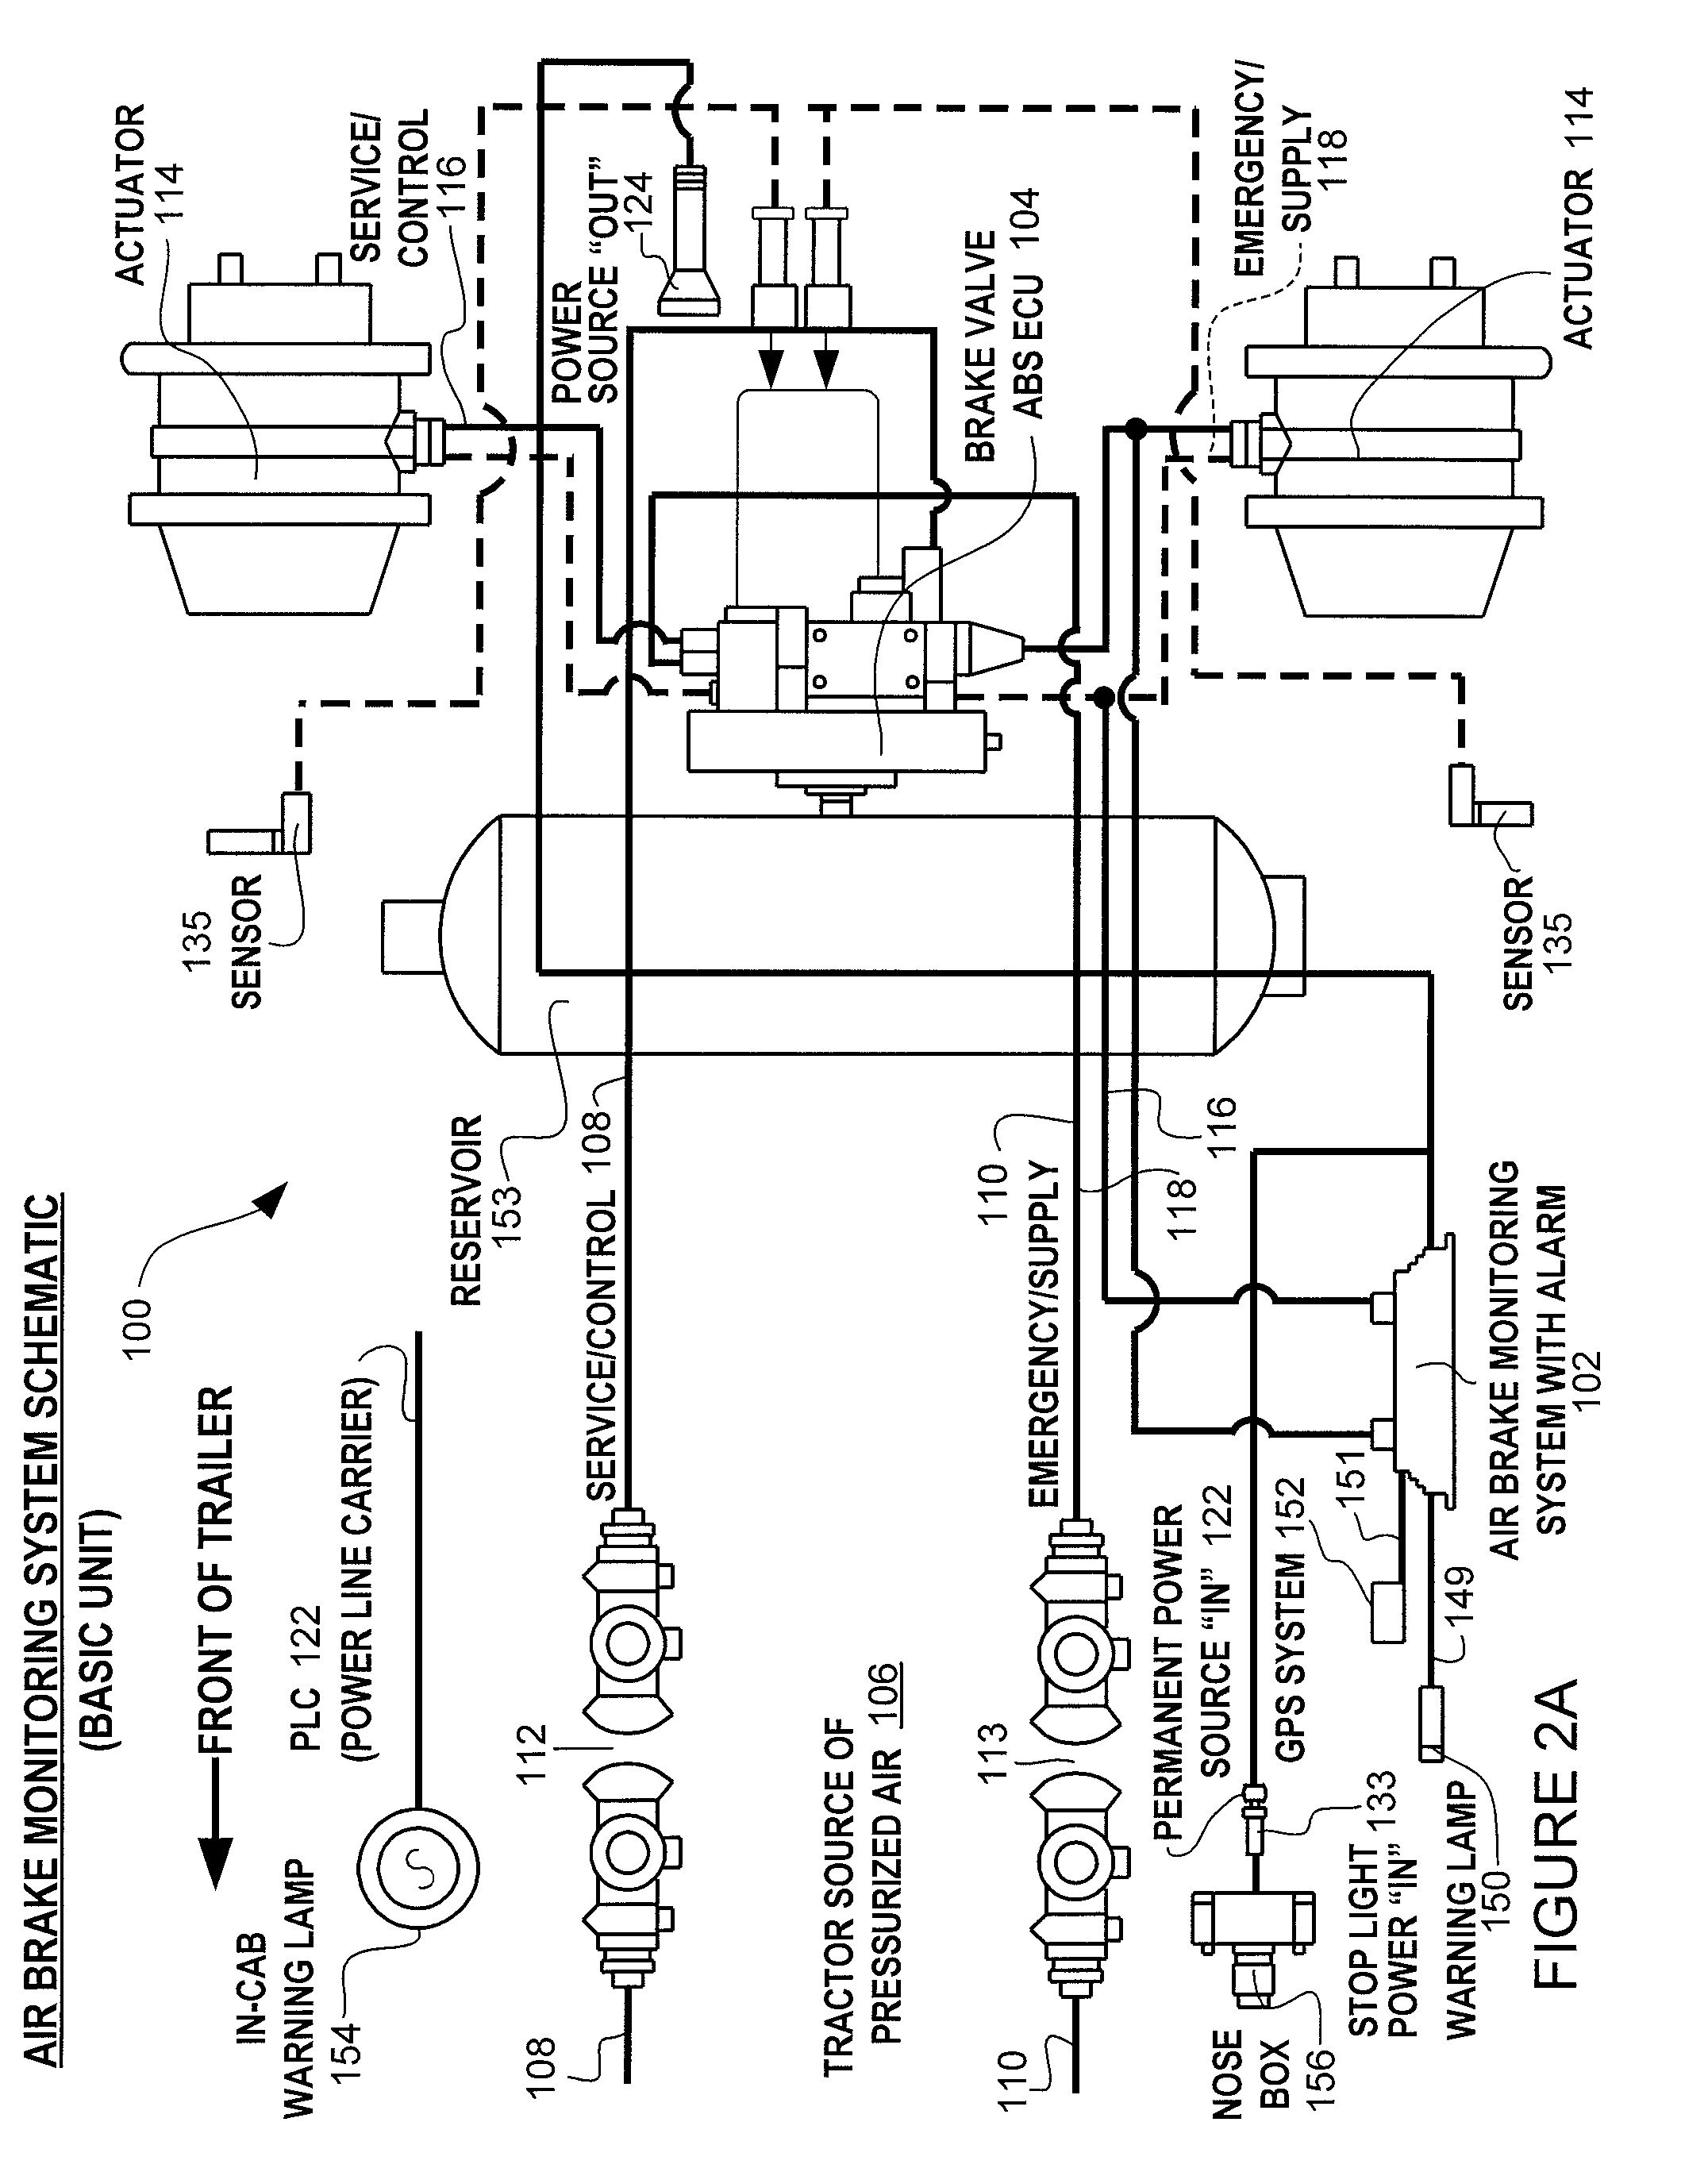 Wiring Manual 110v Schematic Wiring Diagram Free